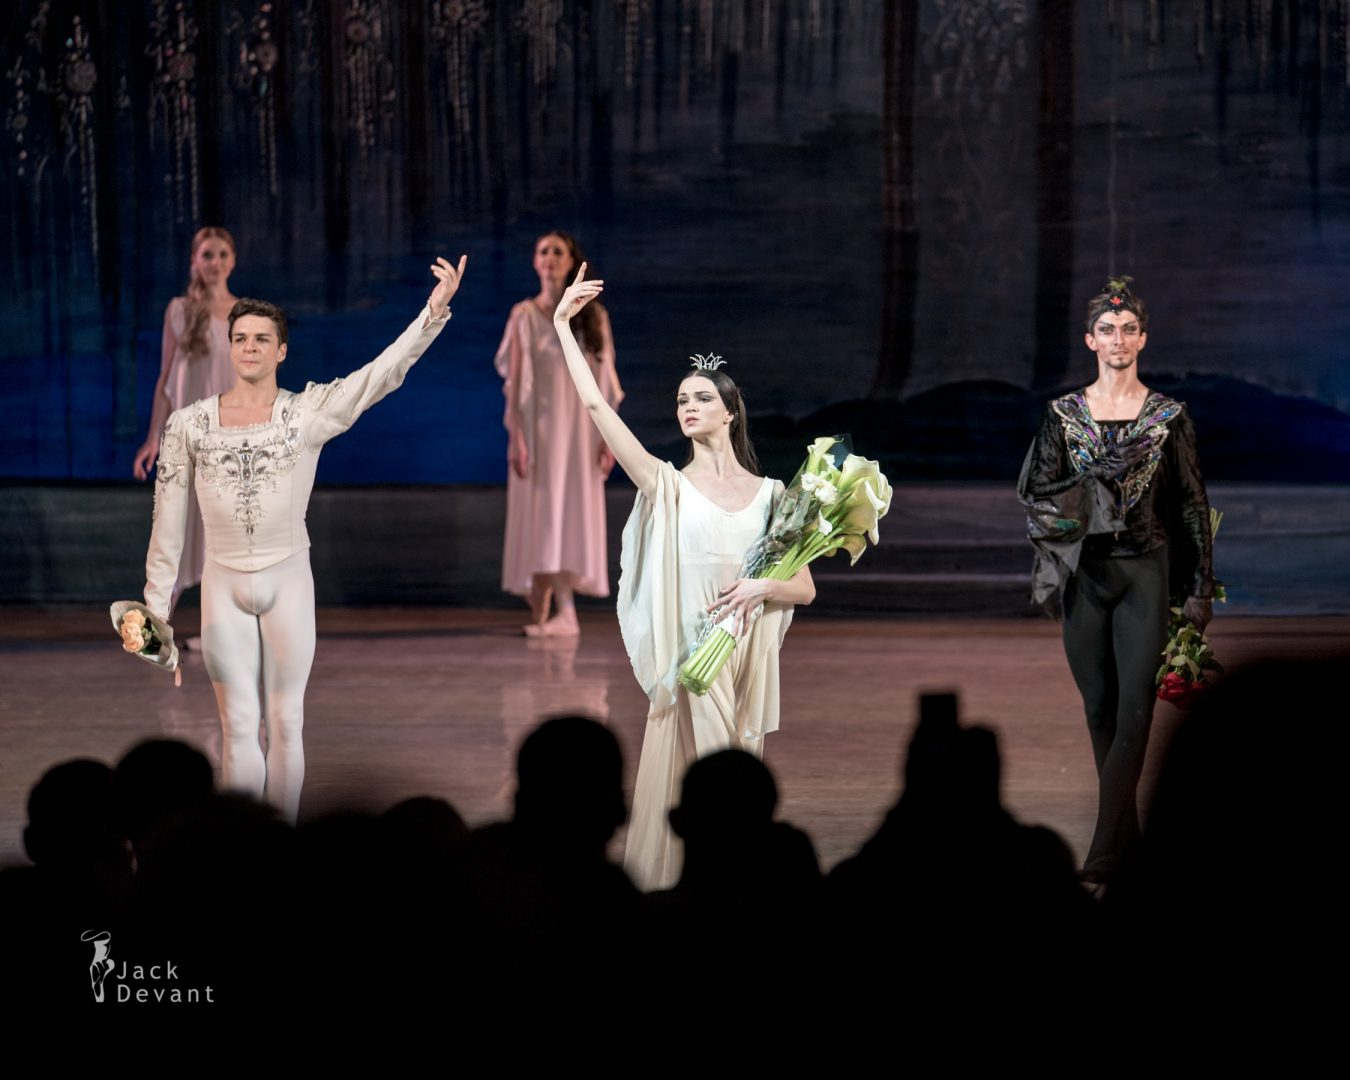 Anastasiya Shevchenko (Ukr ШЕВЧЕНКО Анастасія) as Odile-Odette Denys Nedak final bow